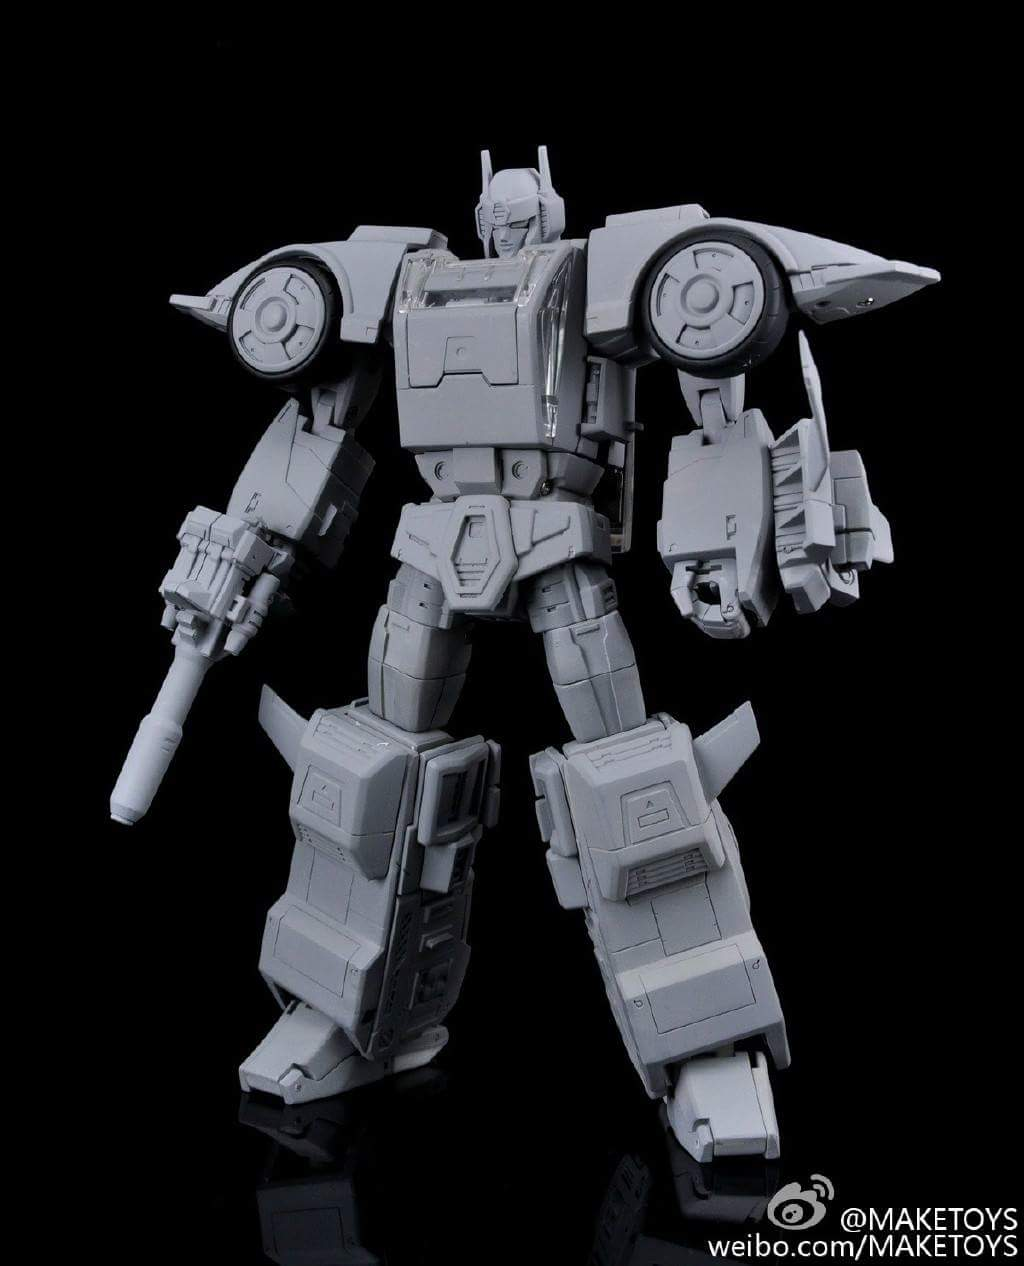 [Maketoys] Produit Tiers - Jouets MTRM - aka Headmasters et Targetmasters - Page 2 JoaVAy4m